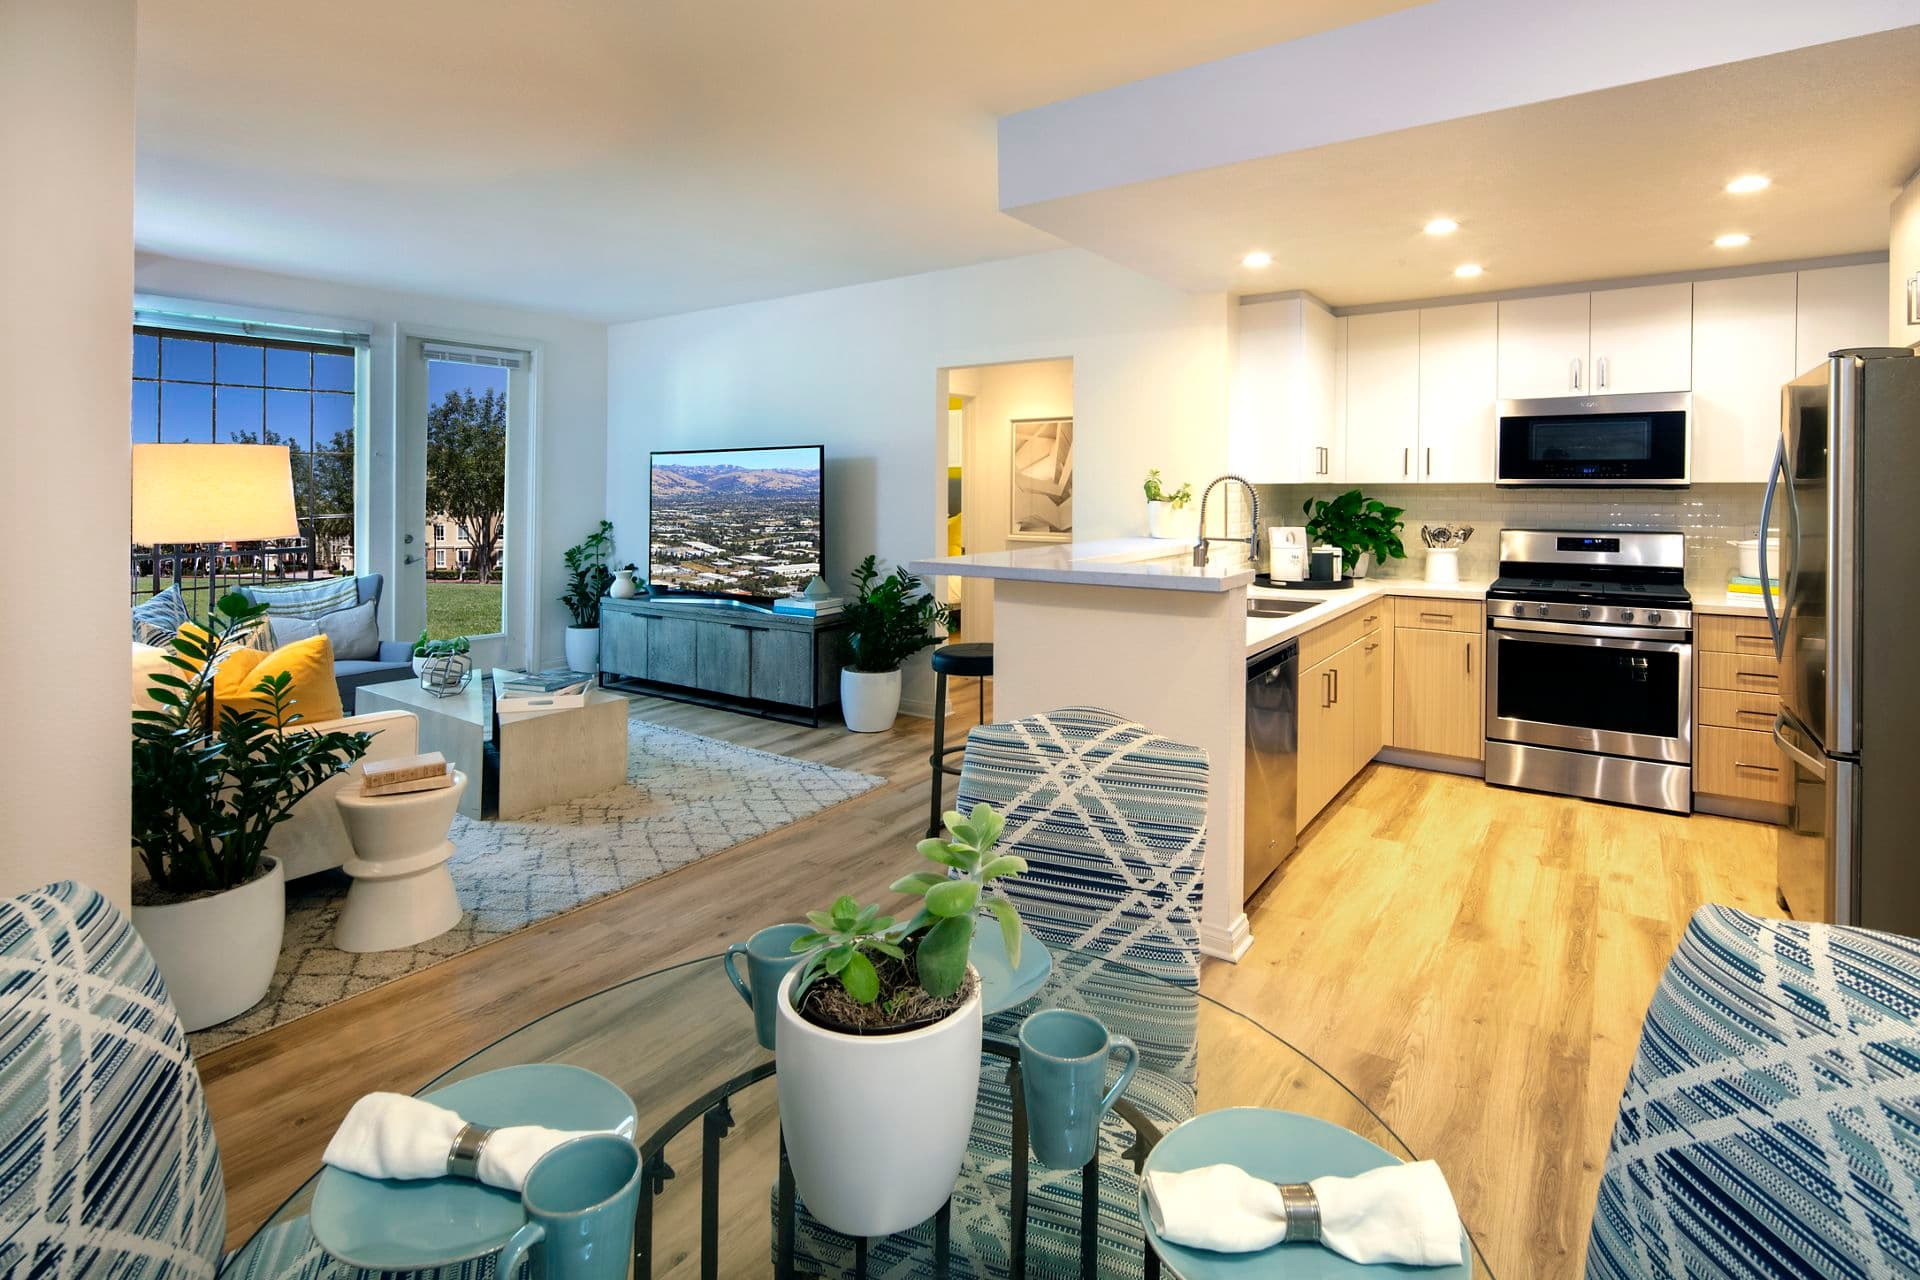 Interior view of a living room and kitchen at The Pines at North Park Apartment Homes in San Jose, CA.